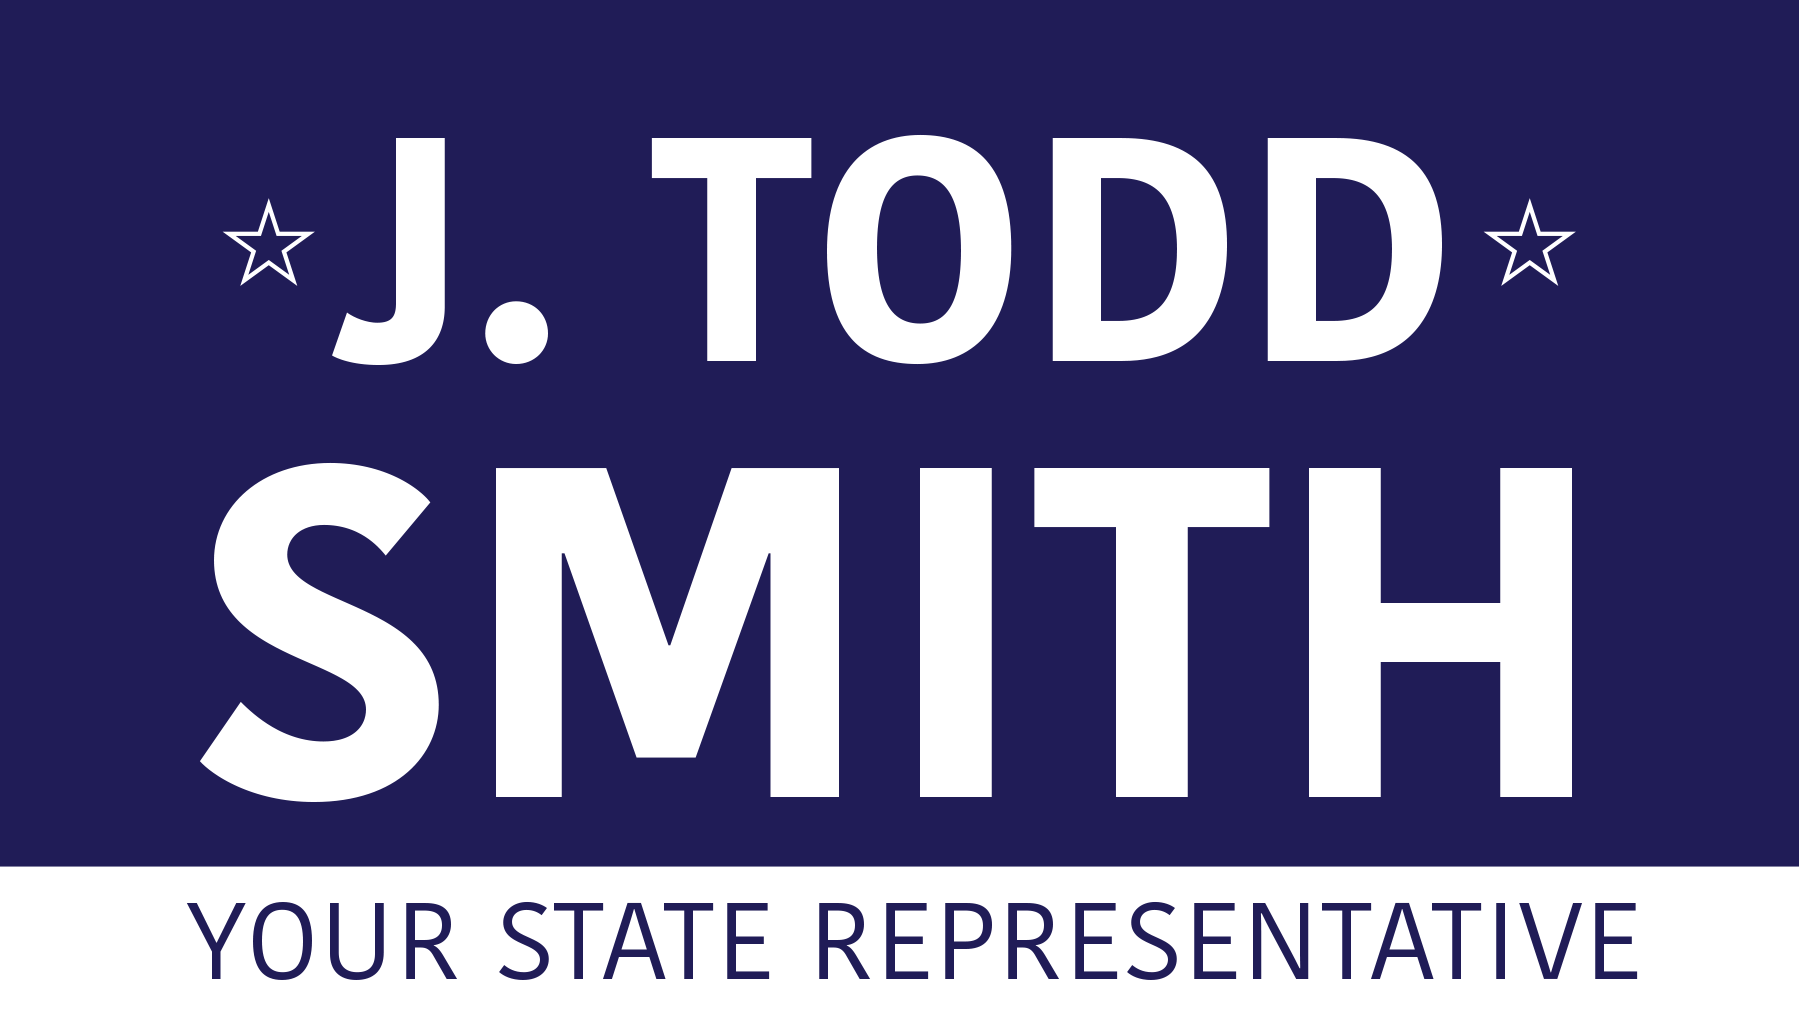 Jtoddsmith newlogo edit